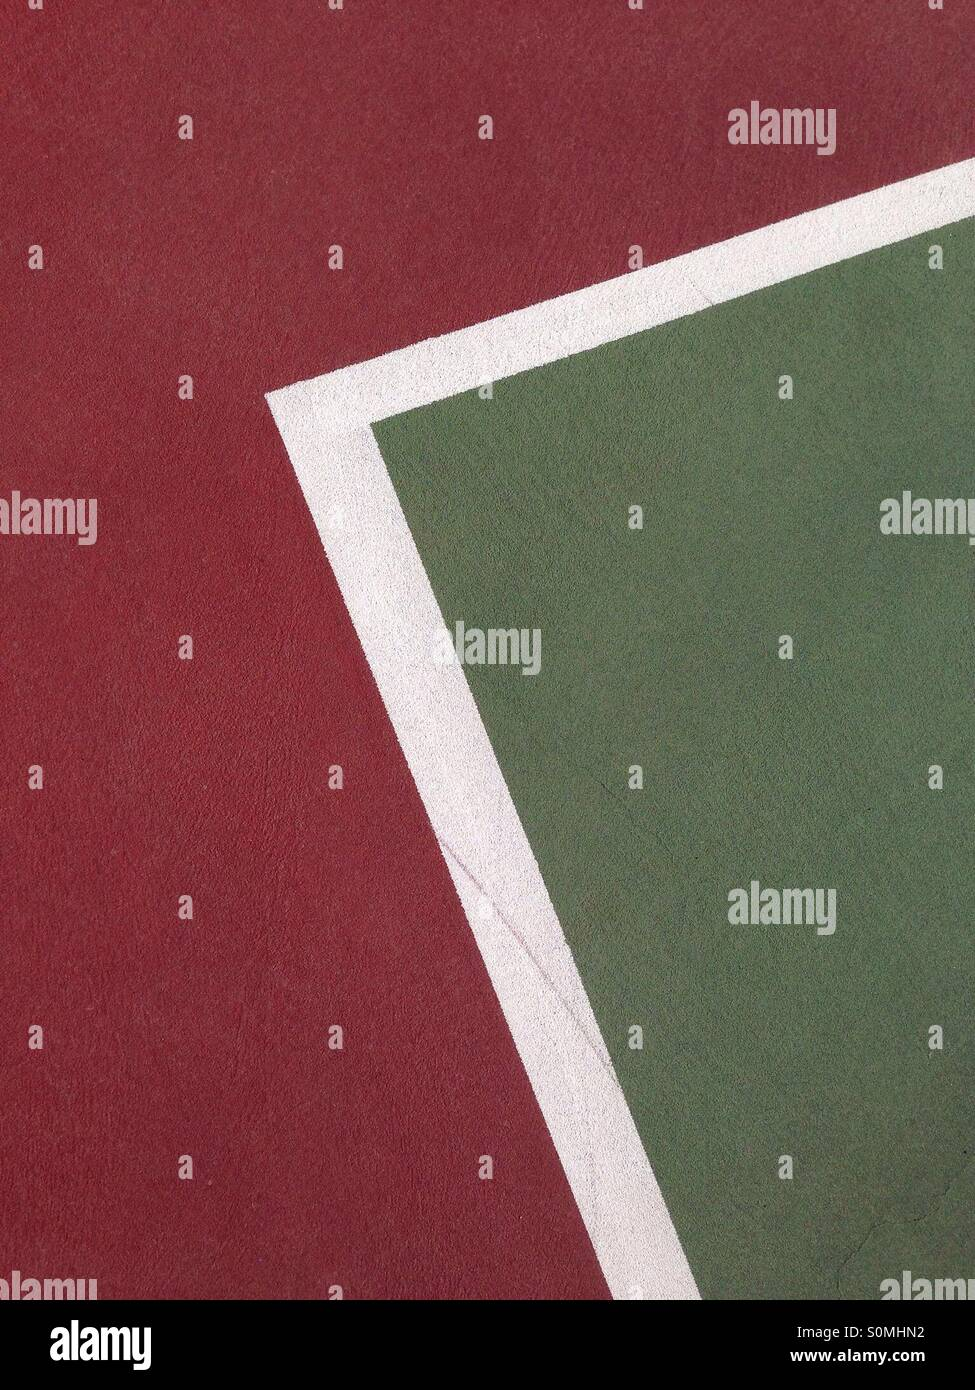 Lignes abstraites sur un court de tennis Photo Stock